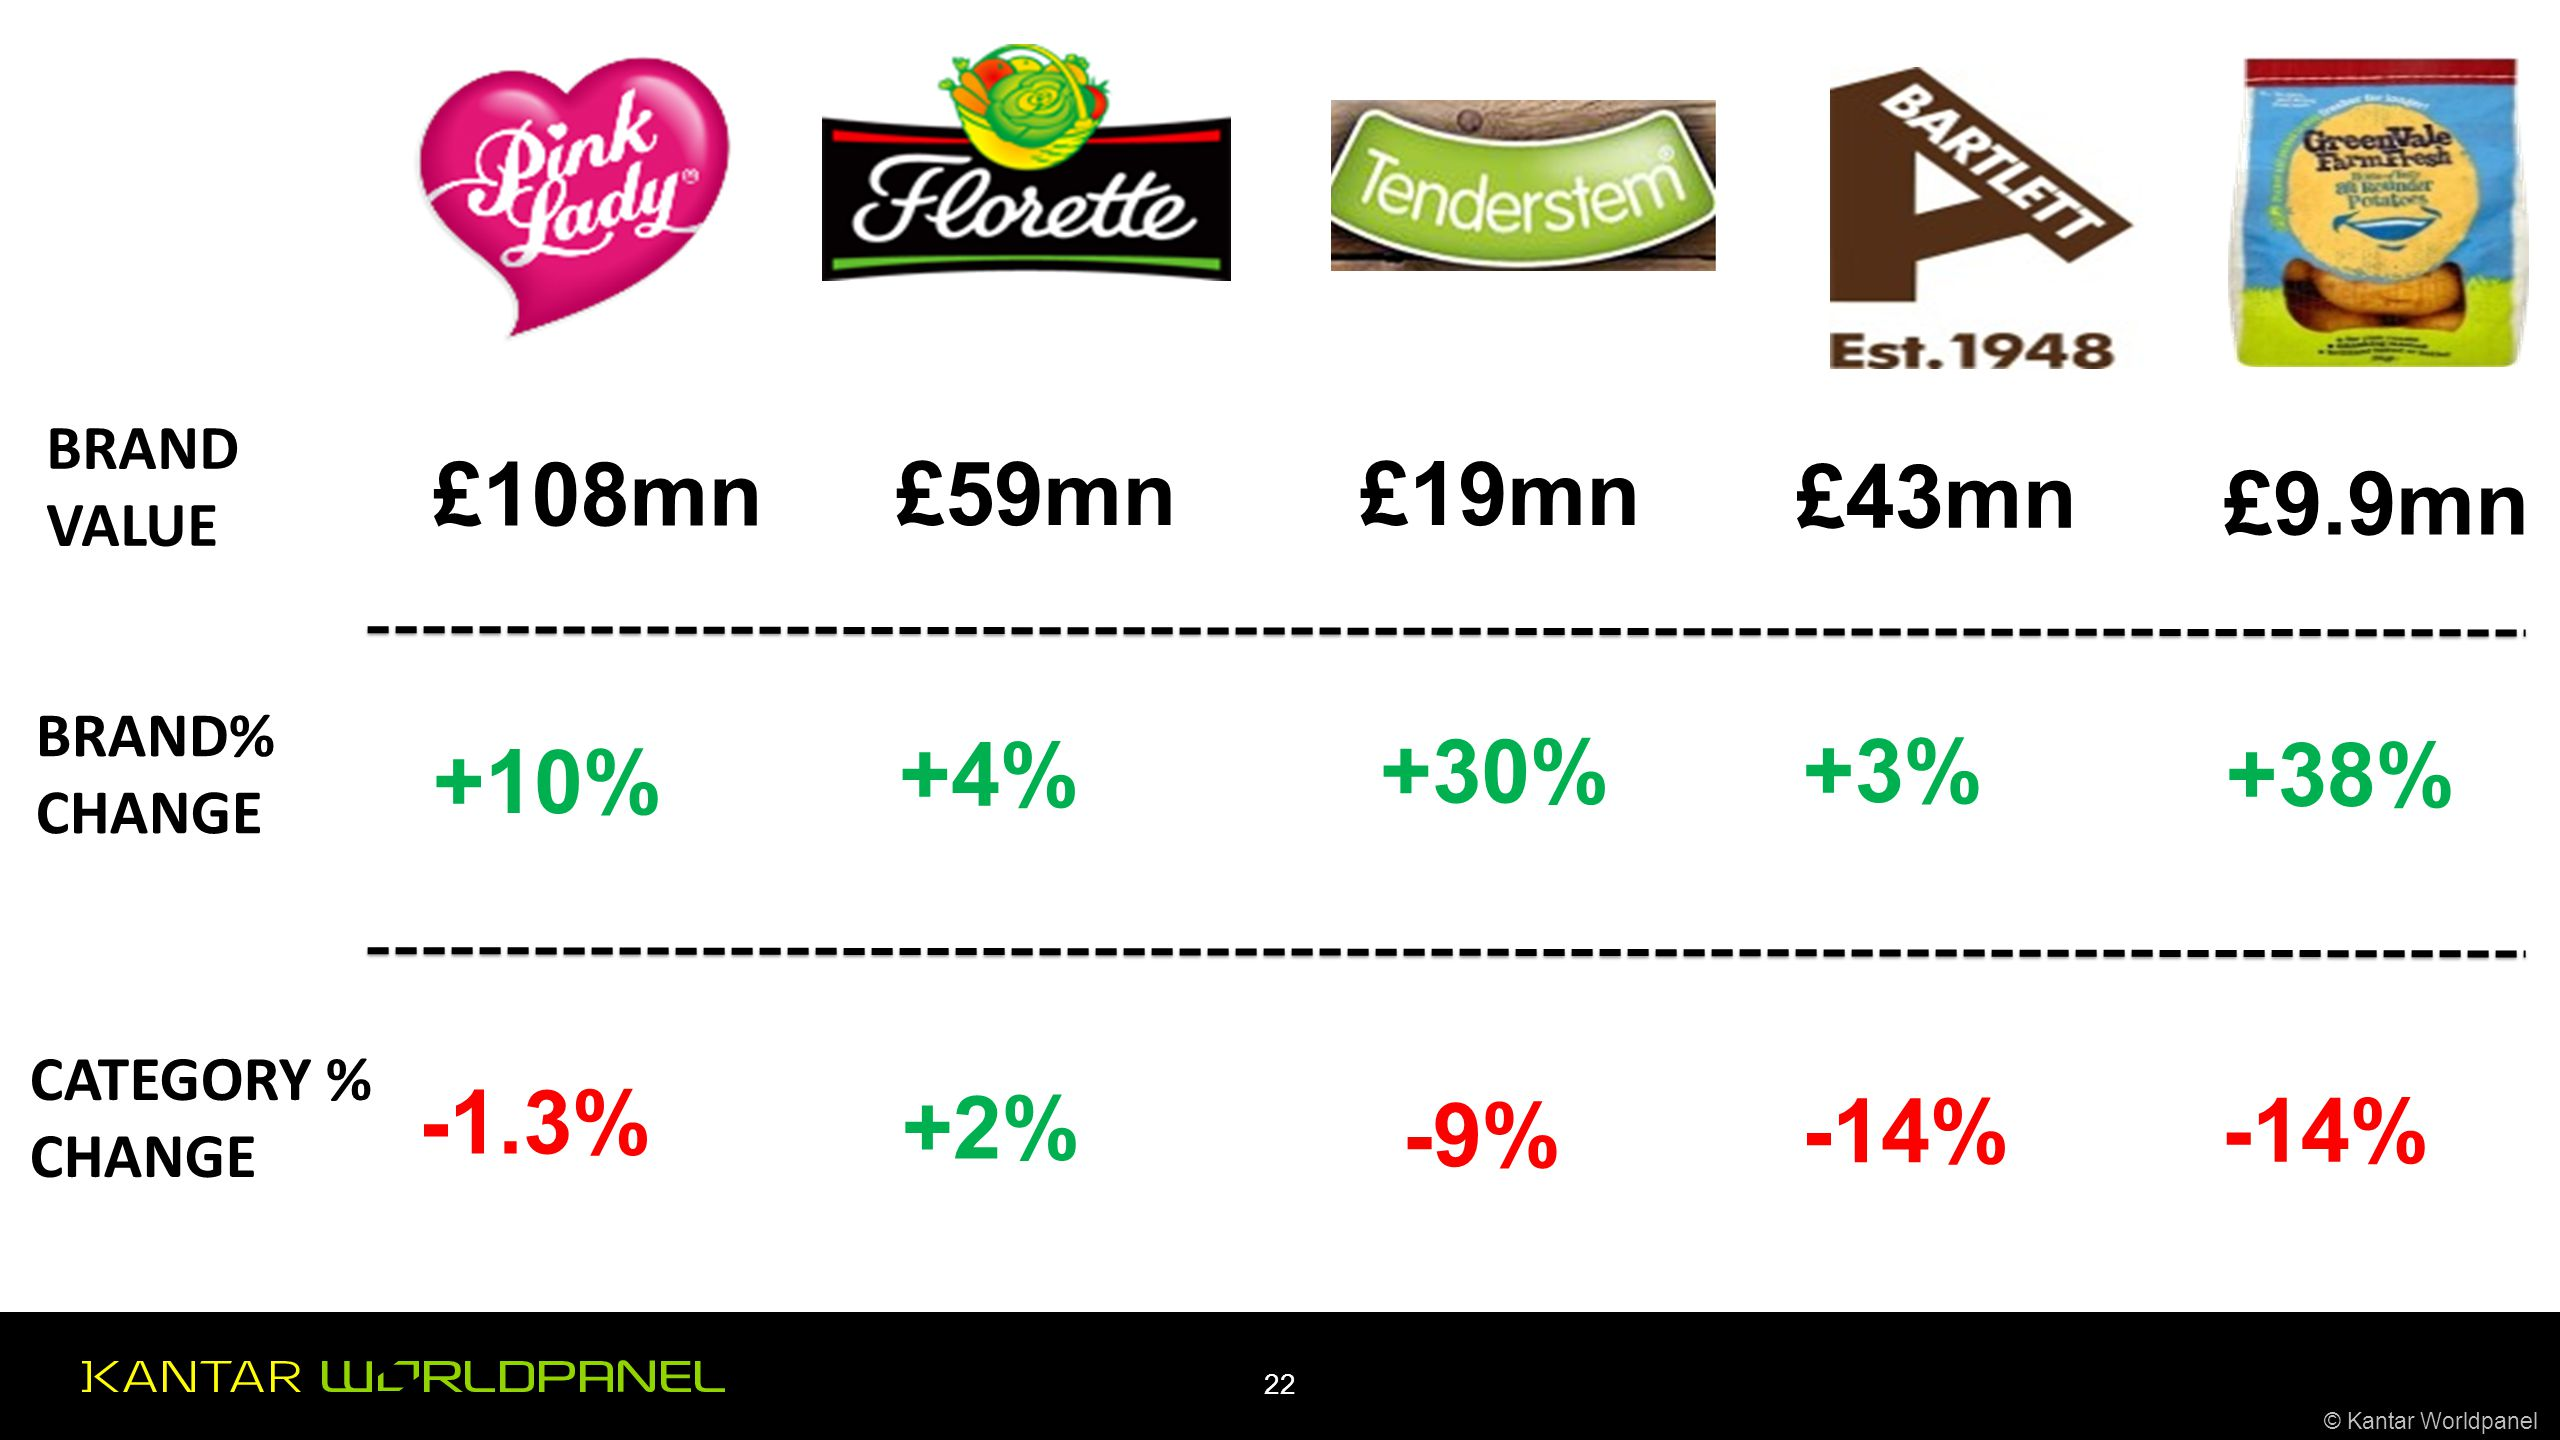 © Kantar Worldpanel 22 BRAND VALUE BRAND% CHANGE CATEGORY % CHANGE £108mn +10% -1.3% £59mn +4% +2% £19mn +30% -9% £43mn +3% -14% £9.9mn +38% -14%